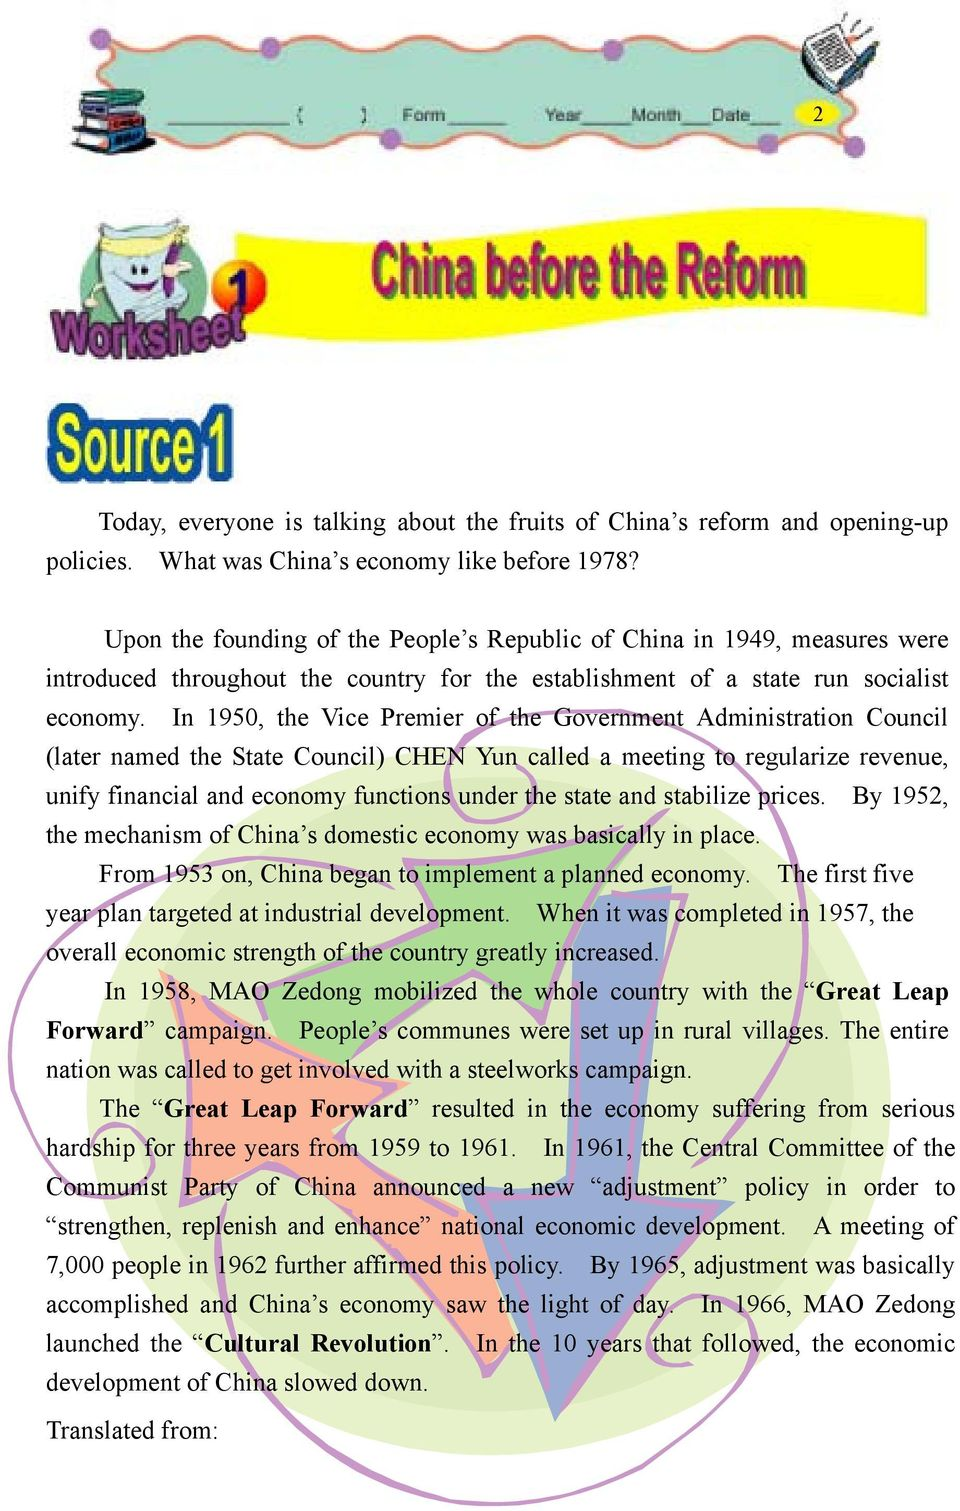 In 1950, the Vice Premier of the Government Administration Council (later named the State Council) CHEN Yun called a meeting to regularize revenue, unify financial and economy functions under the